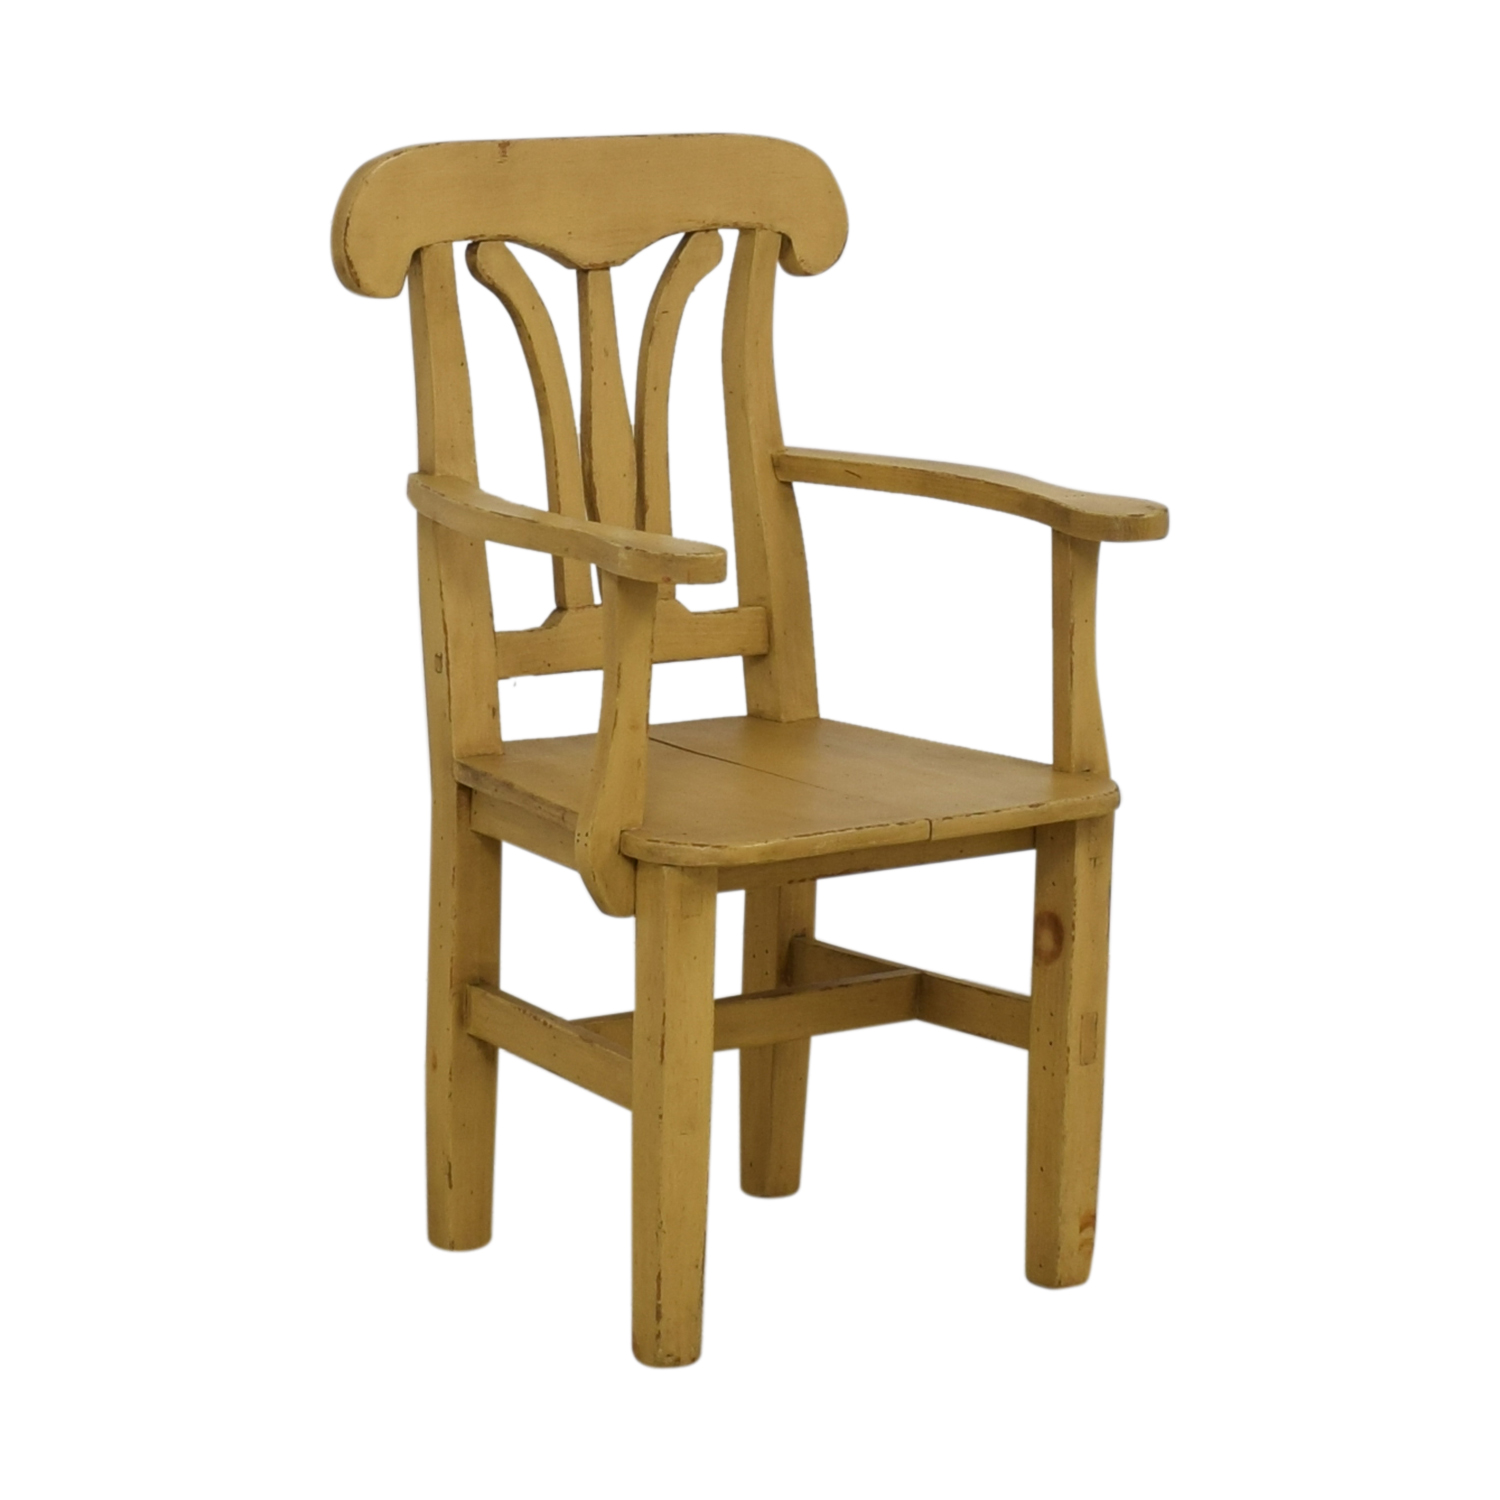 Robert Michael Furnishings Robert Michael Furnishings Rustic Accent Chair Accent Chairs